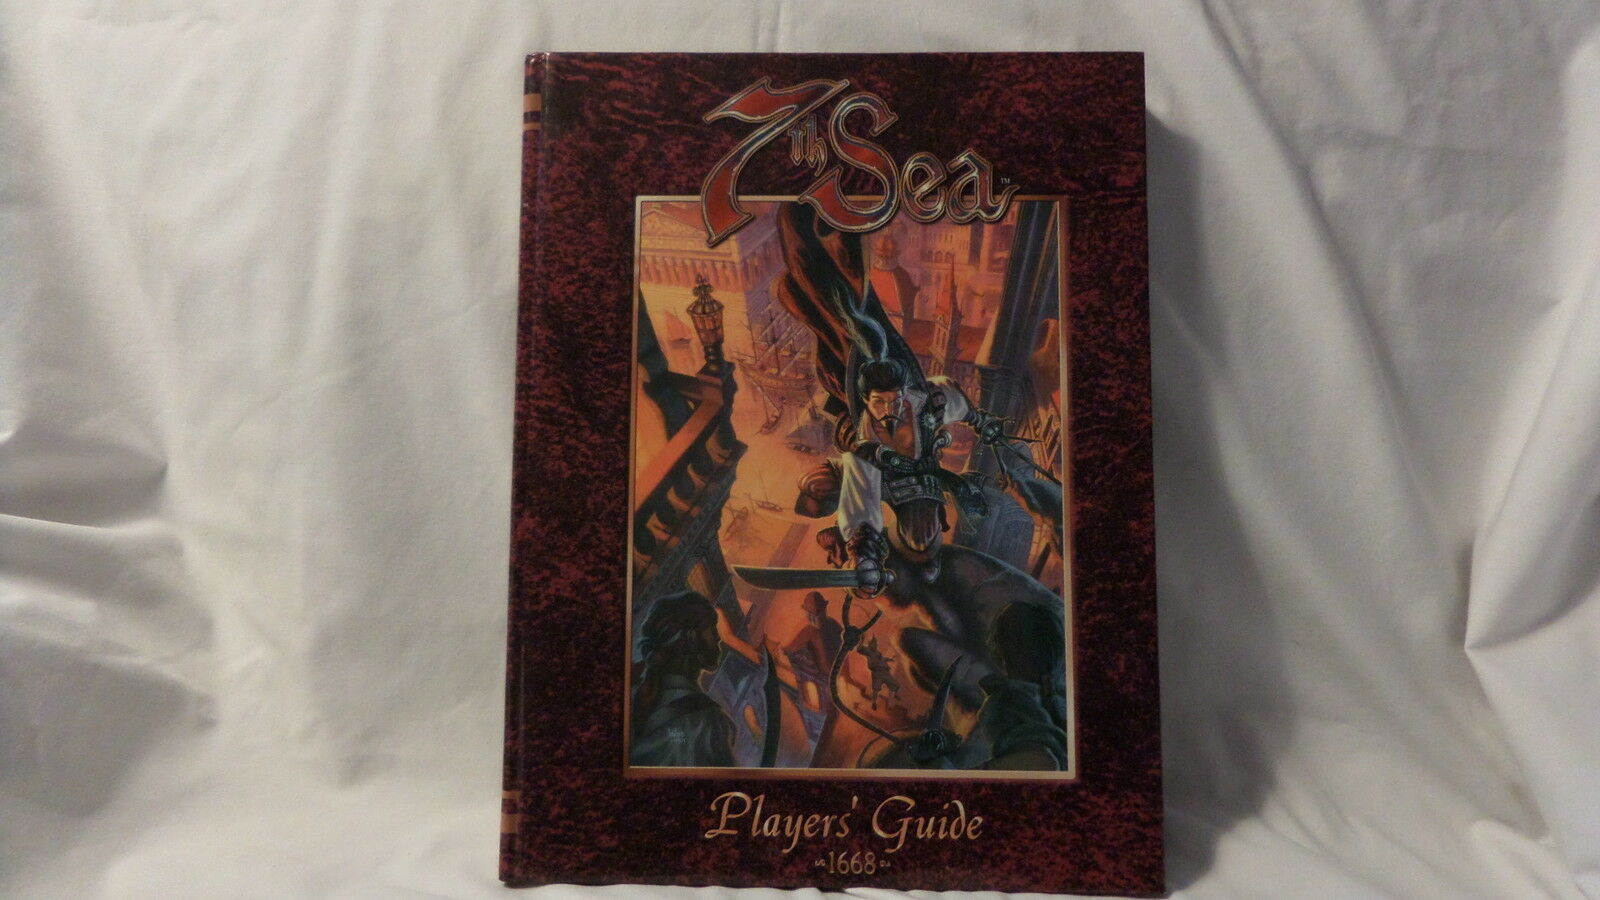 7th Sea  Player's Guide 1668